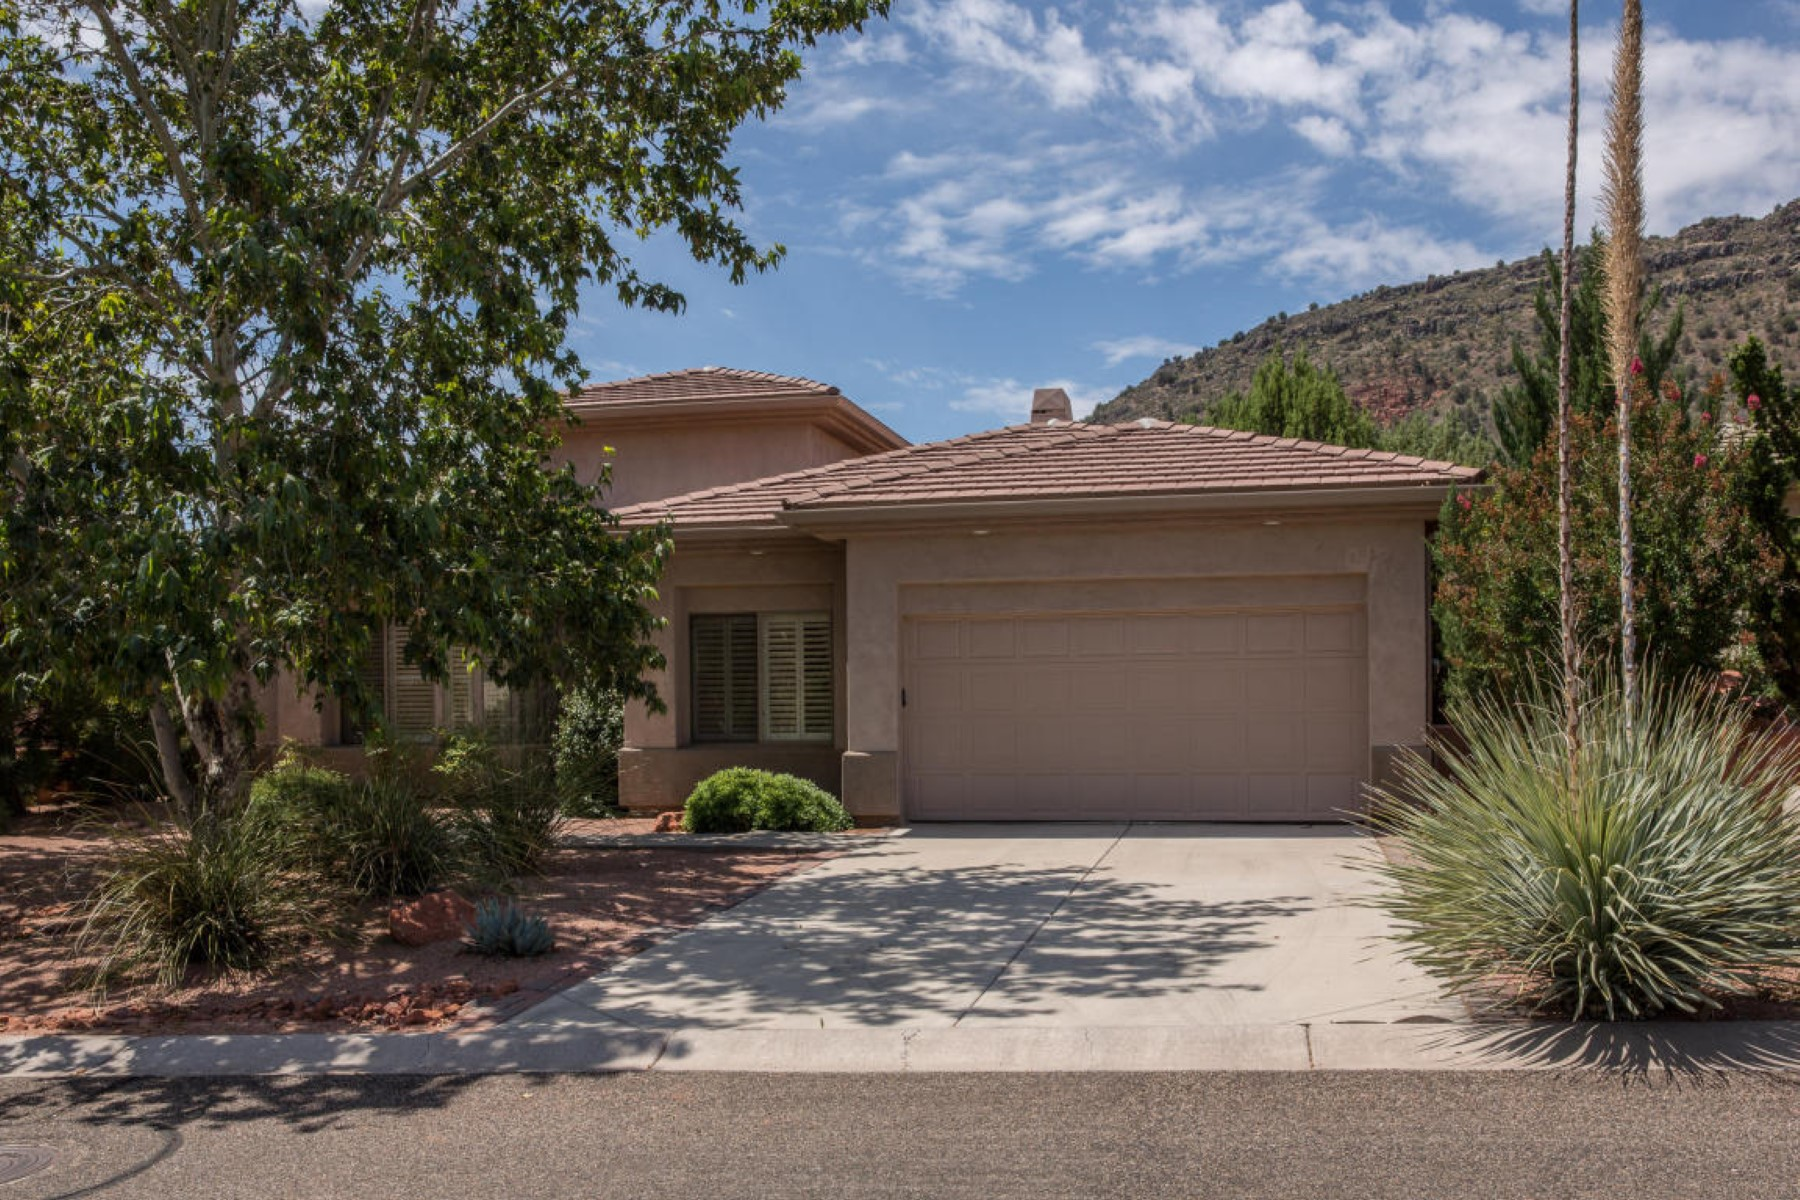 Single Family Home for Sale at This spacious elegant home is in a great location in the Sedona AZ Golf Resort. 1420 Crown Ridge RD Sedona, Arizona 86351 United States